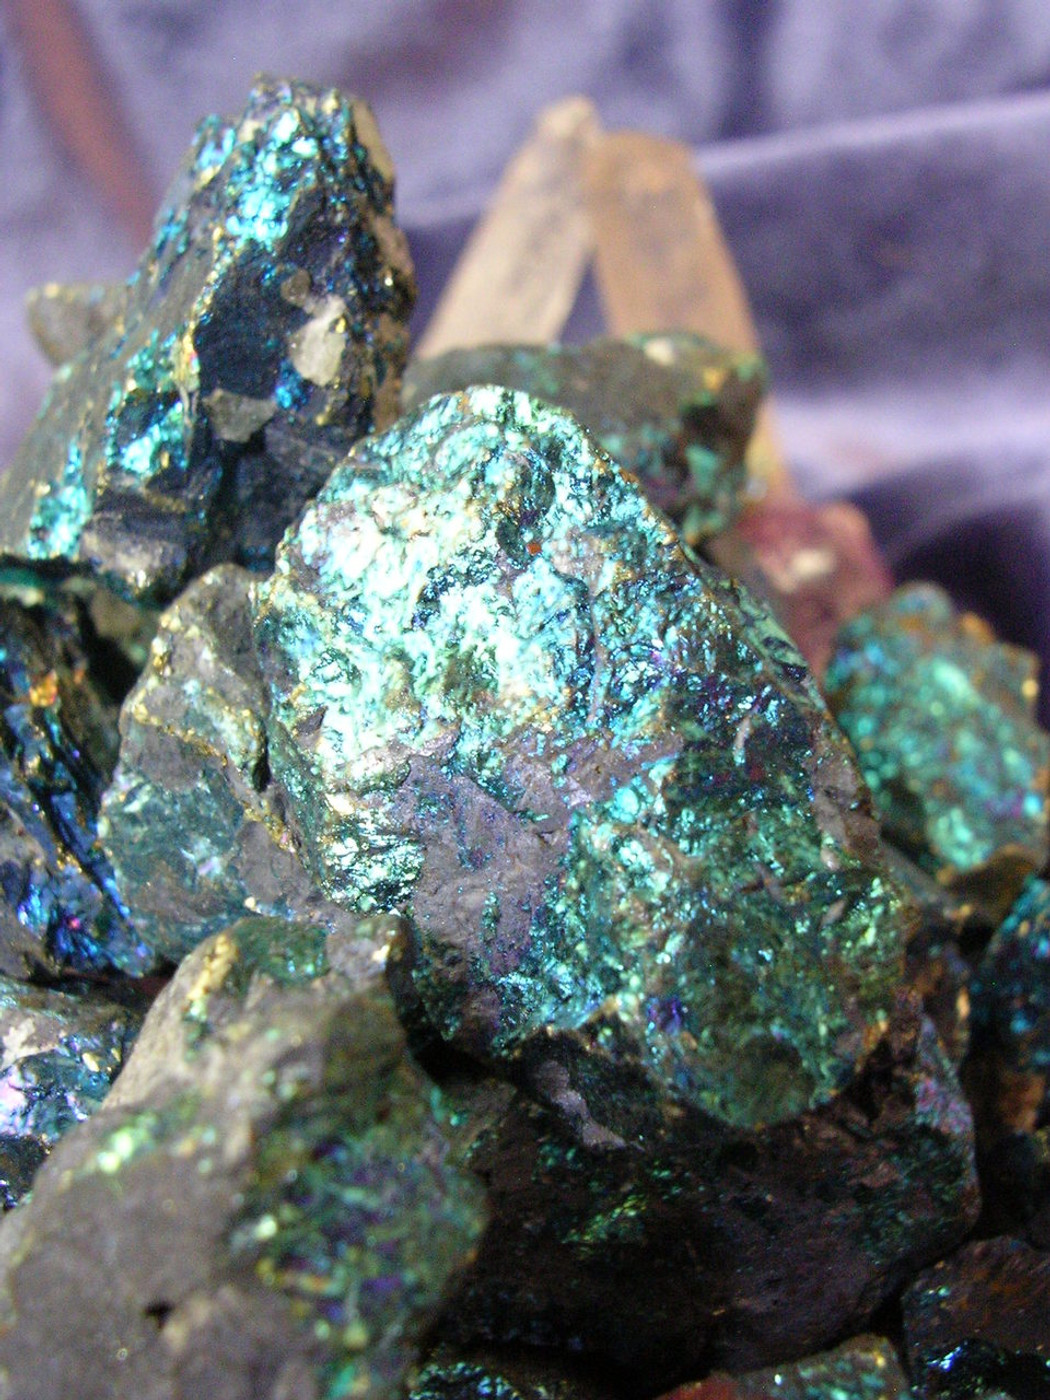 3 Peacock Pyrite Gemstones, Earth and Fire Energies, Metaphysical